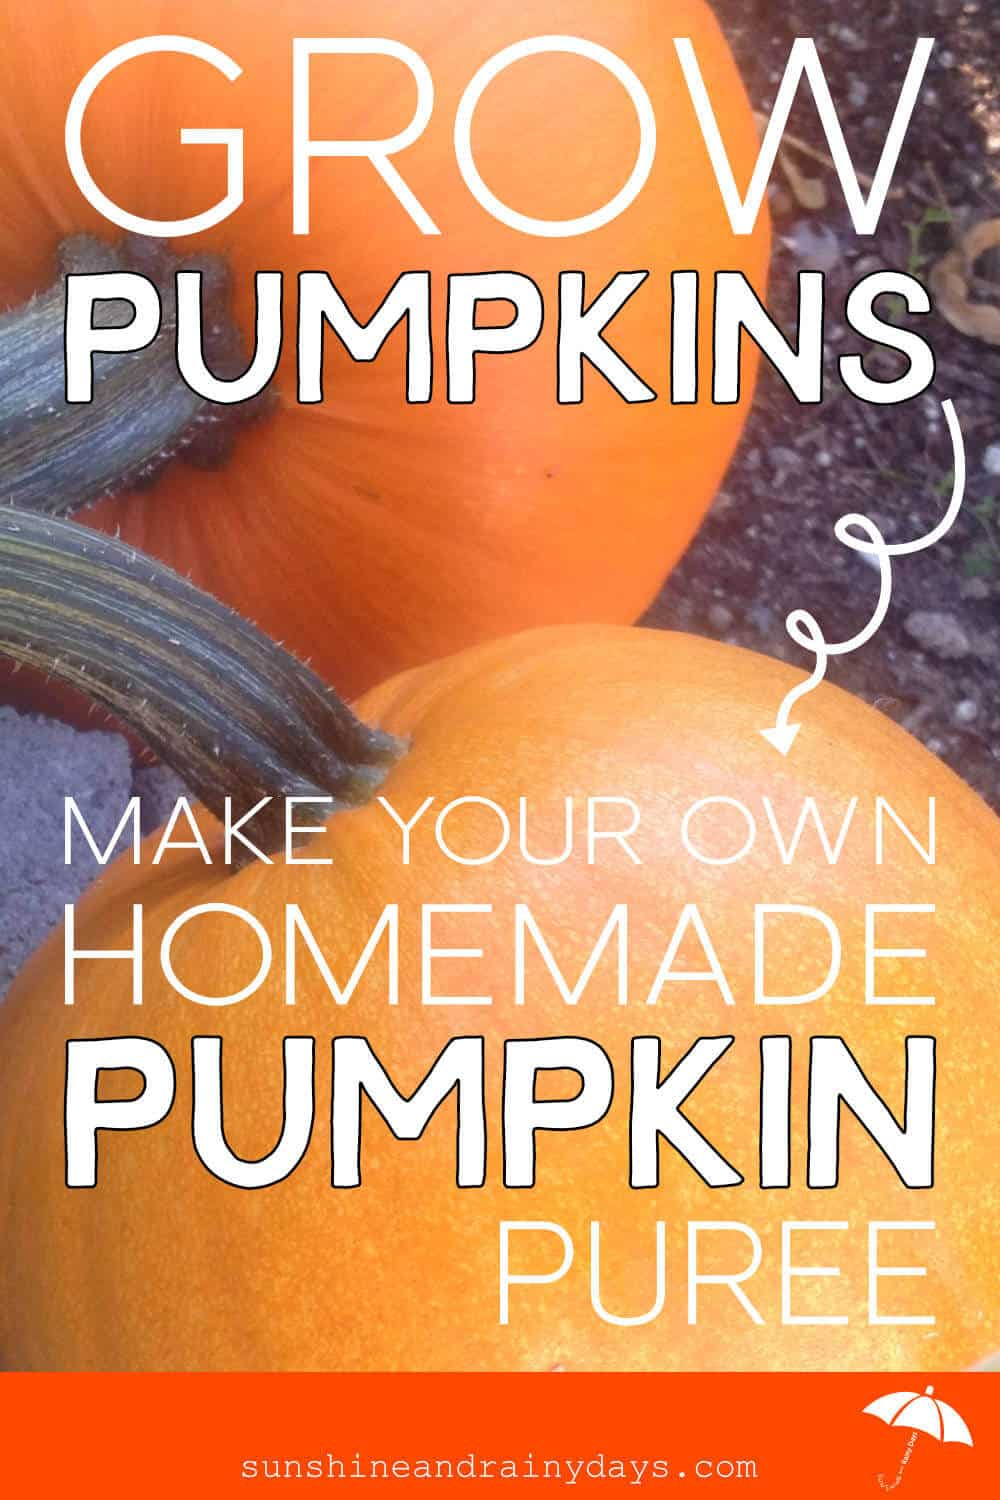 Grow Your Own Pumpkins And Make Homemade Pumpkin Puree